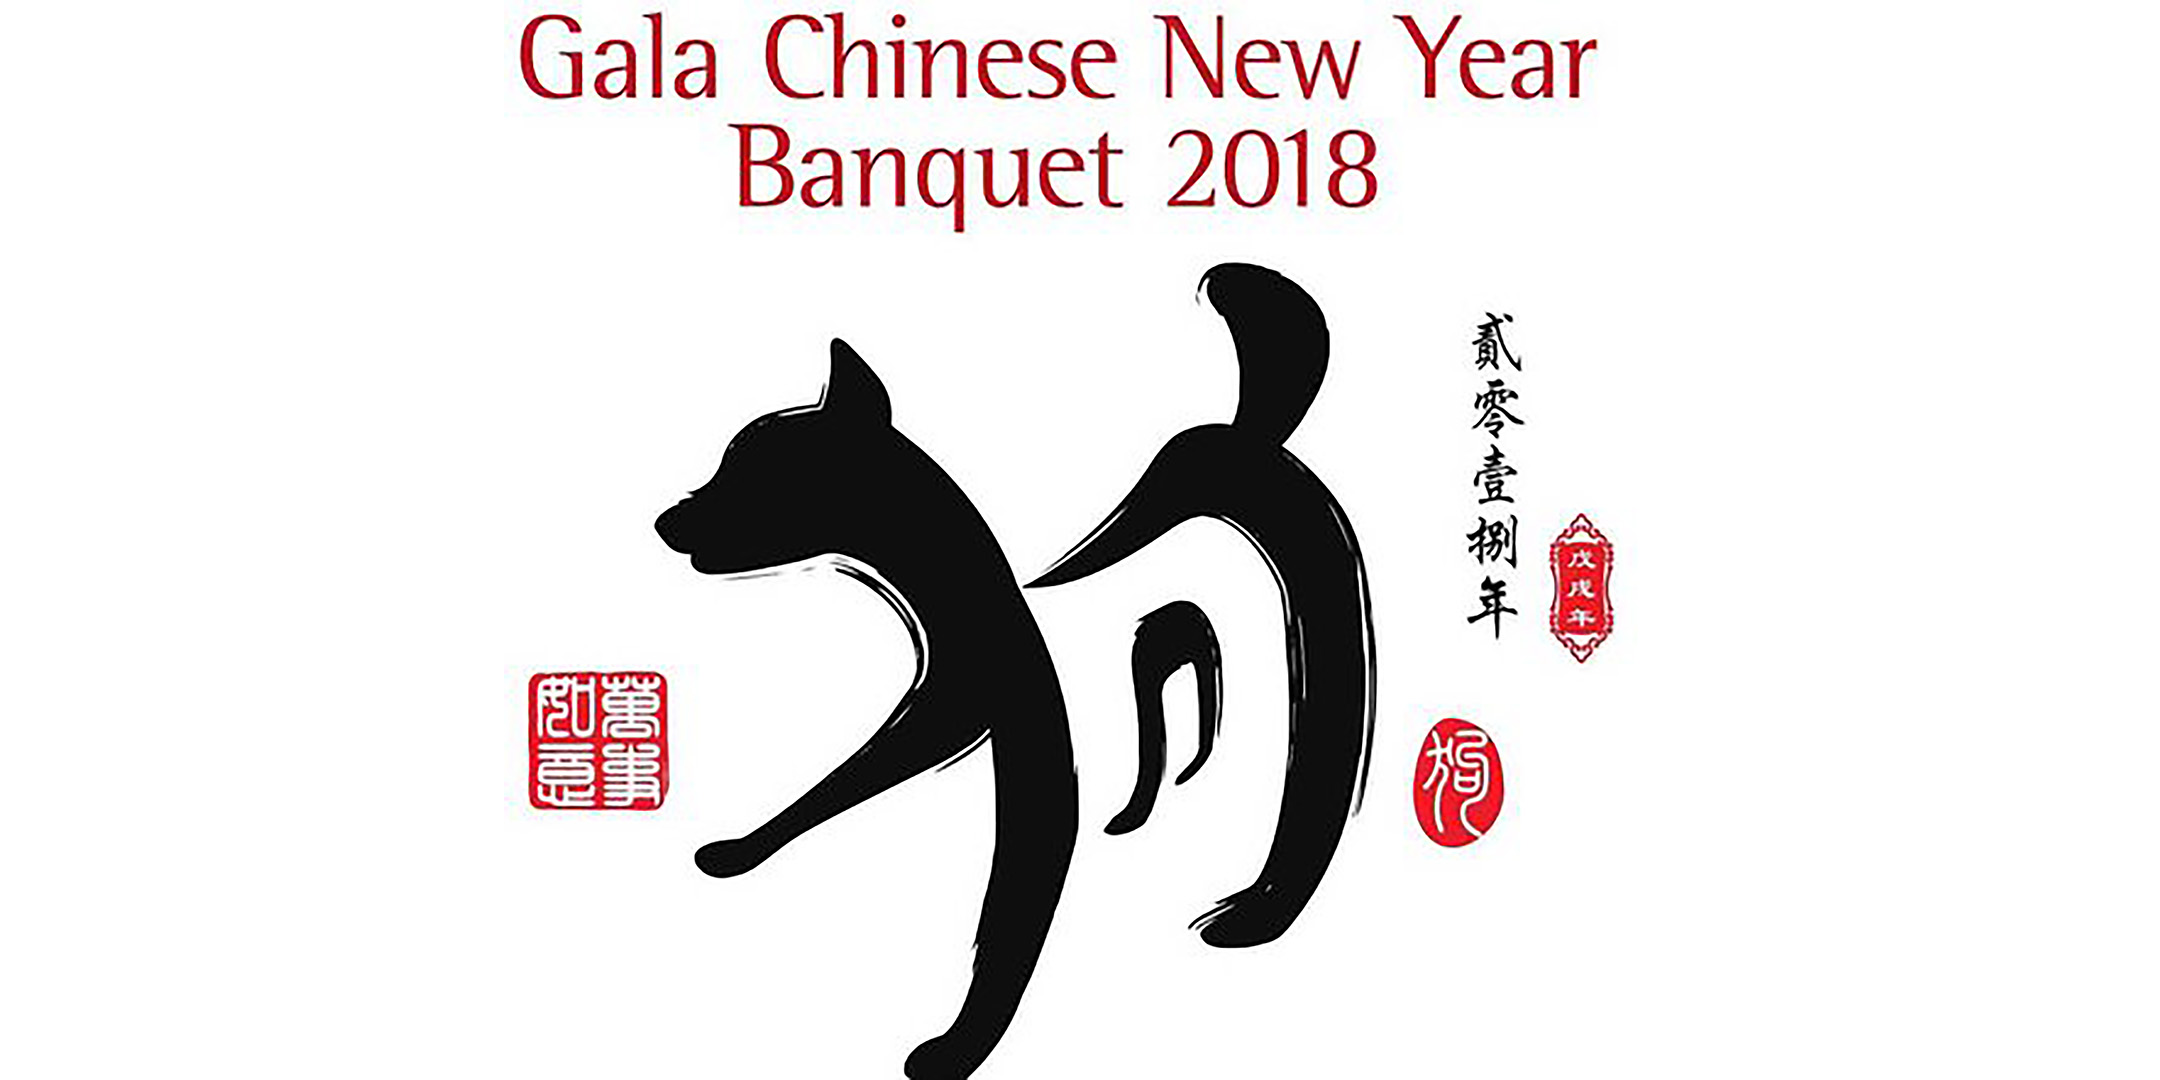 gala chinese new year banquet 2018 rsz_banquet_invitation_2018_2160x1080jpg